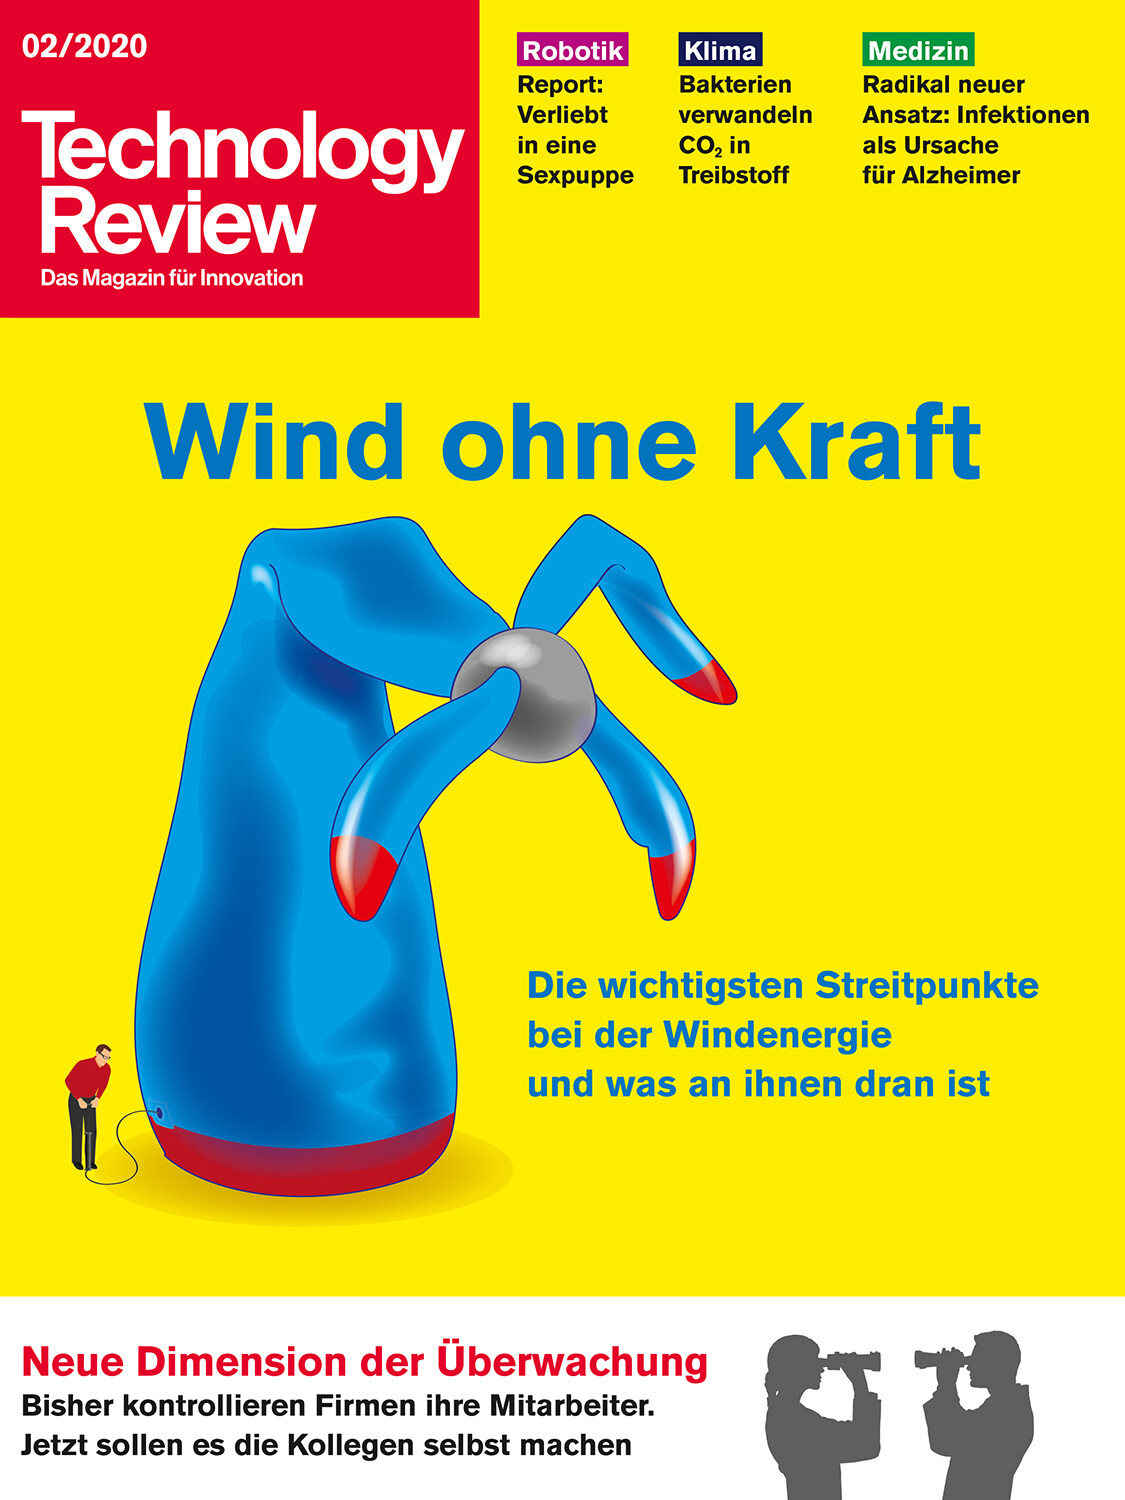 Technology Review 02/2020